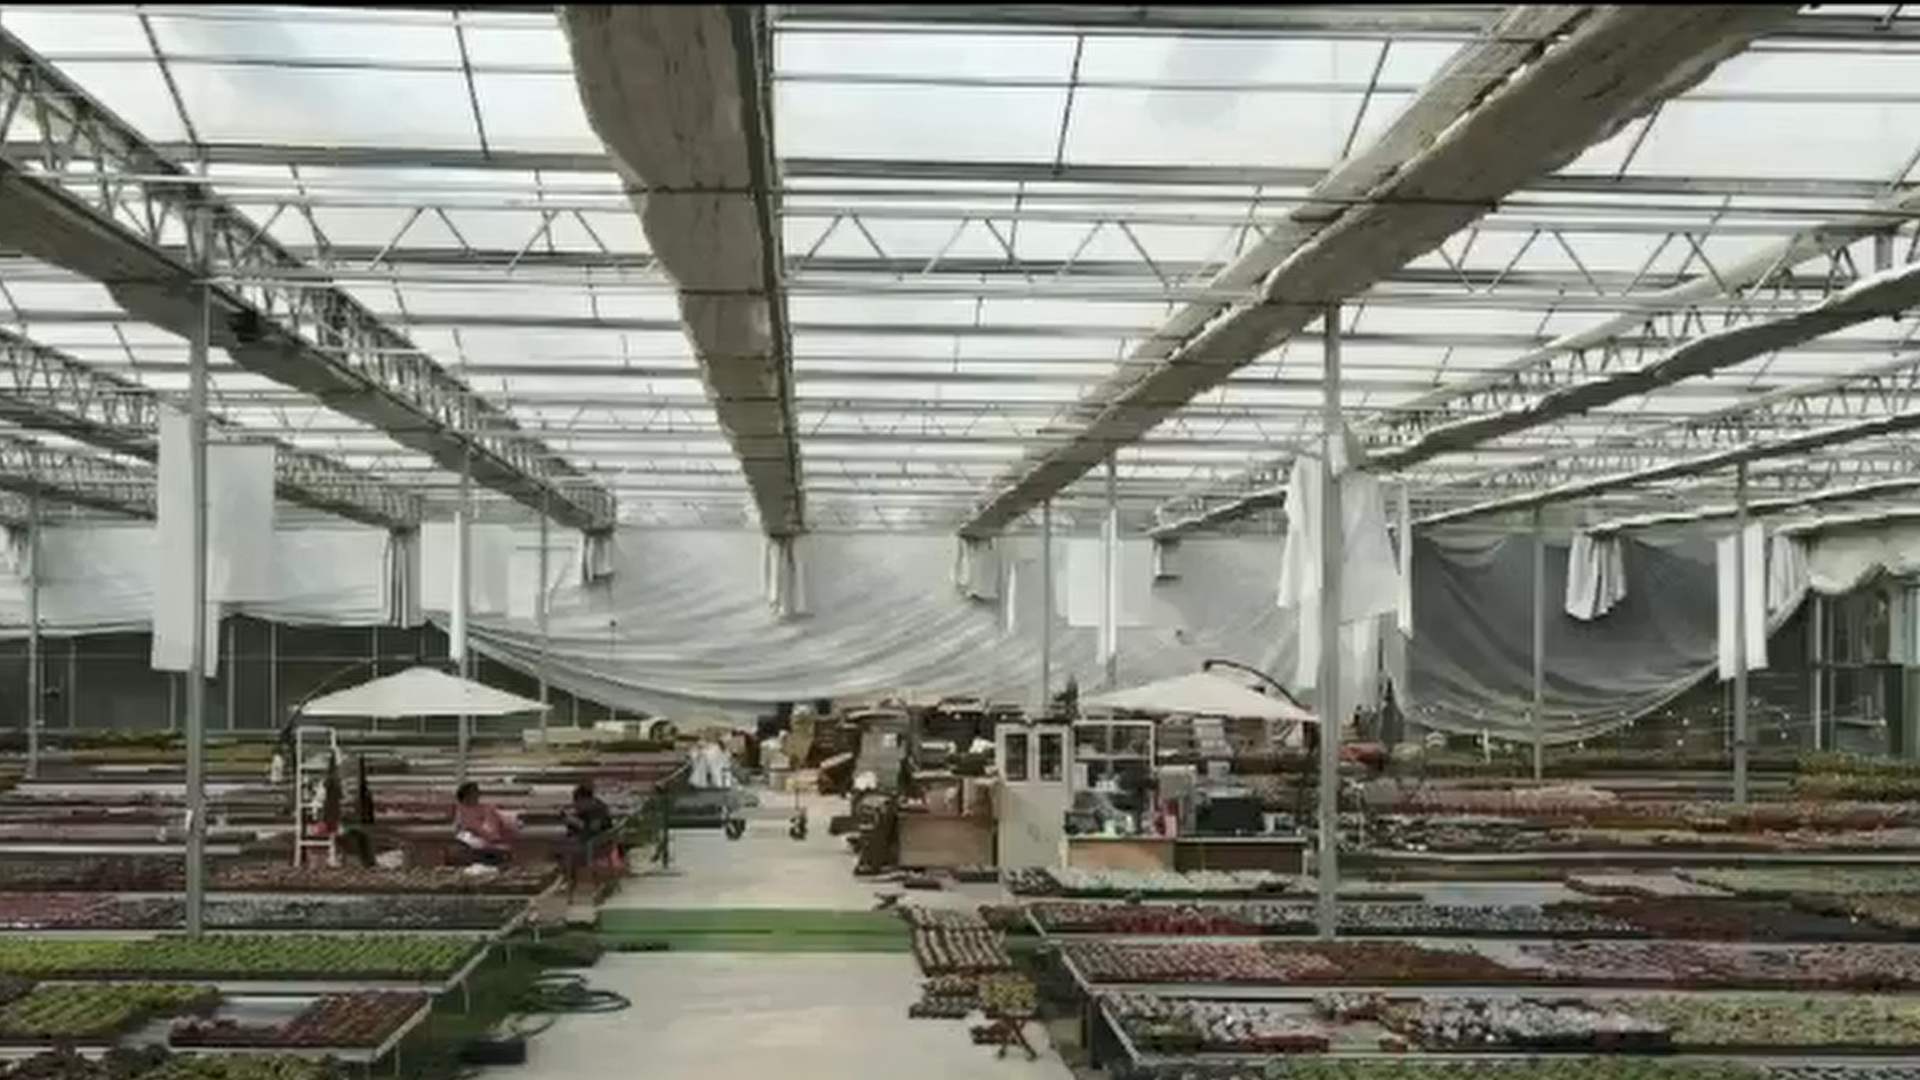 Professional Polycarbonate Sheet Greenhouse manufacturers